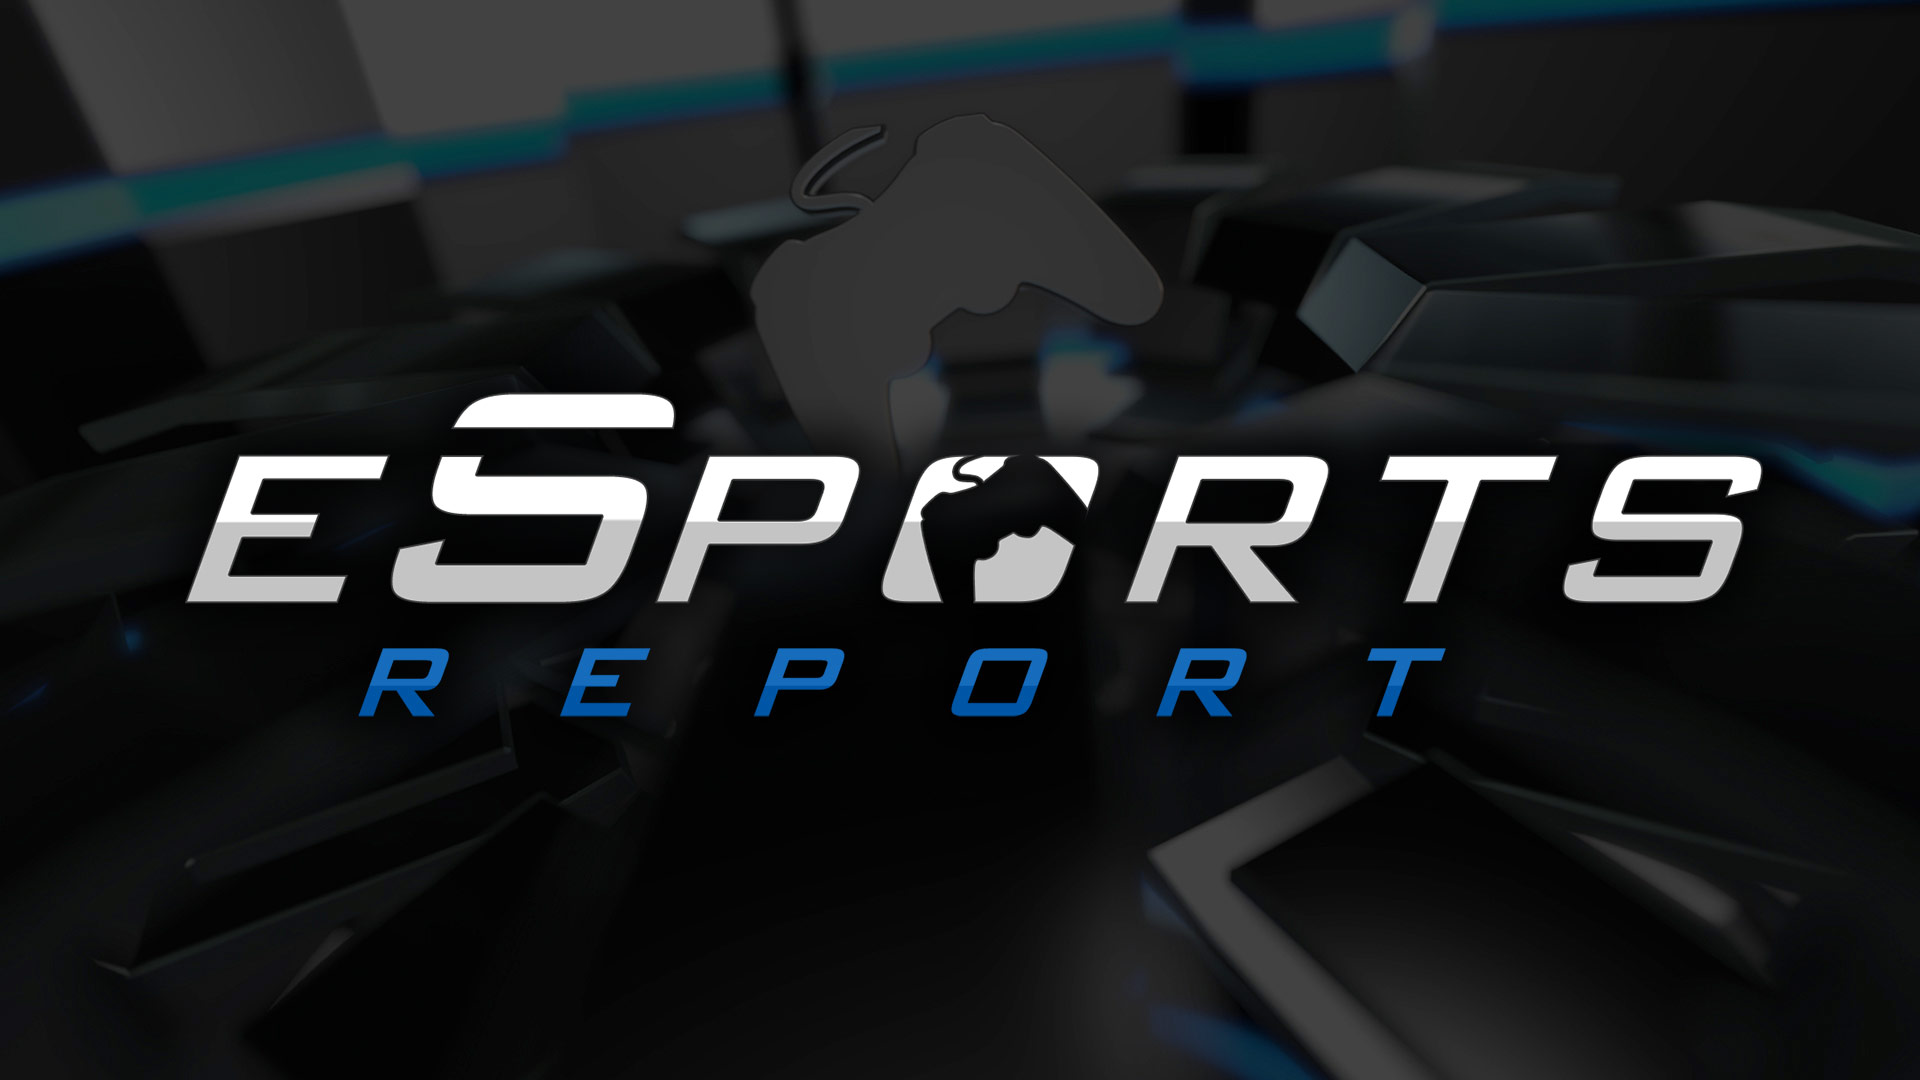 esports, videogames, video games, processional gaming, content, contributors, esports teams